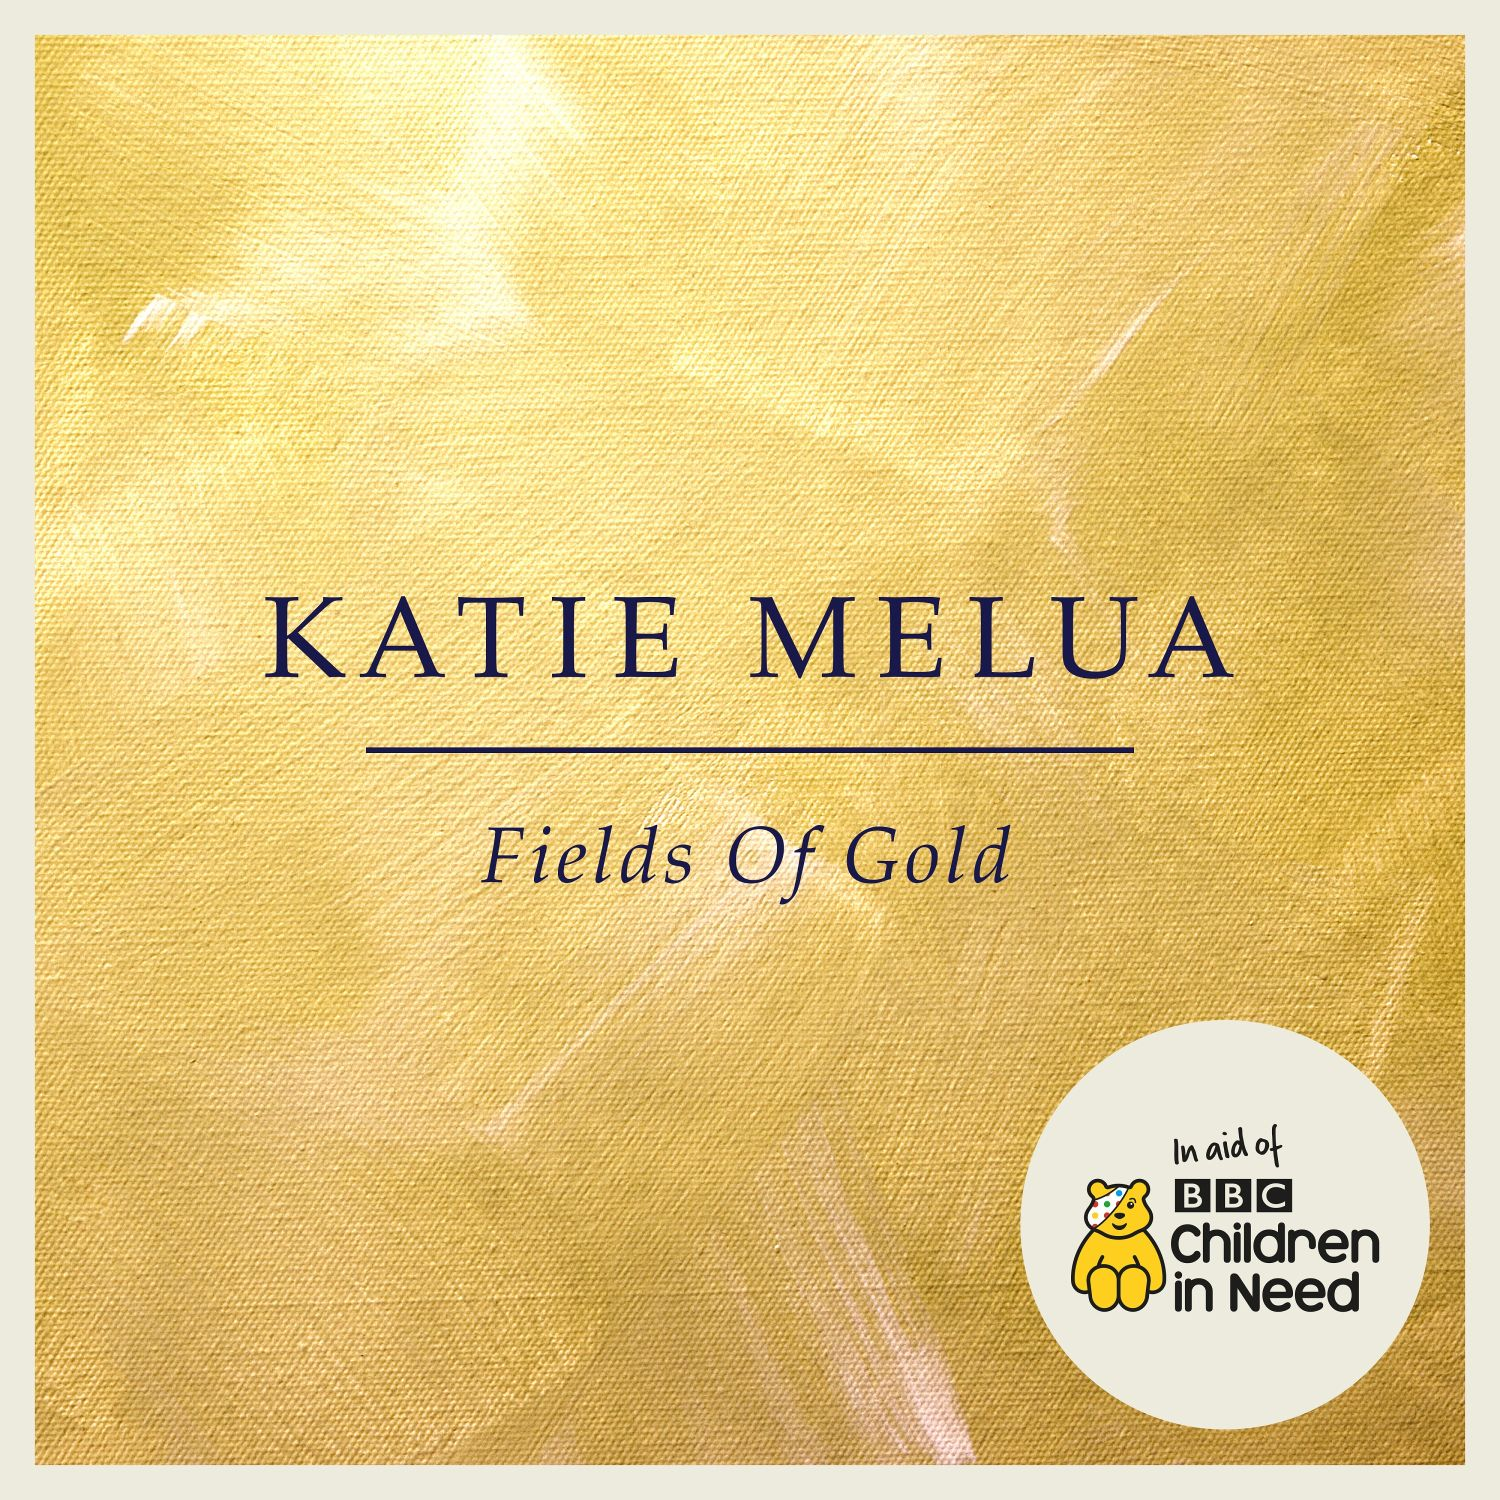 Katie Melua's Fields Of Gold